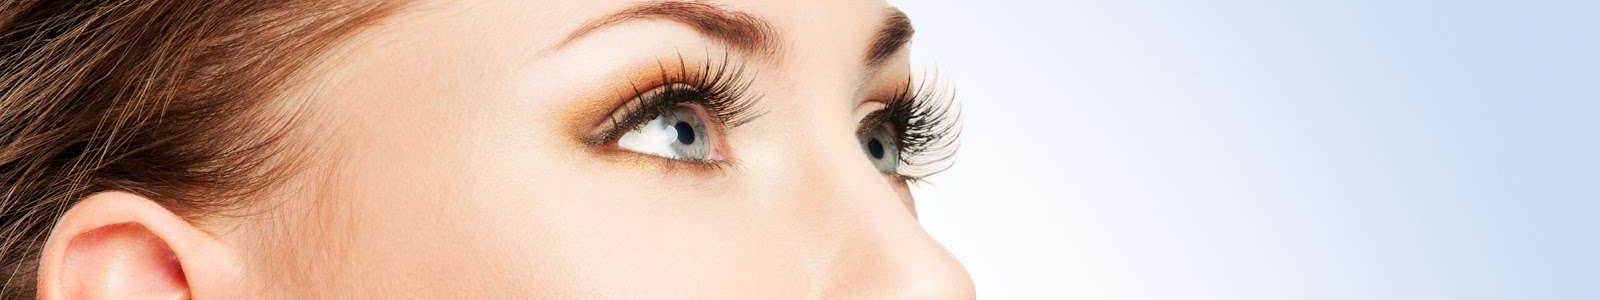 Lvl Lashes Brows In Reigate Surrey Mon Amie